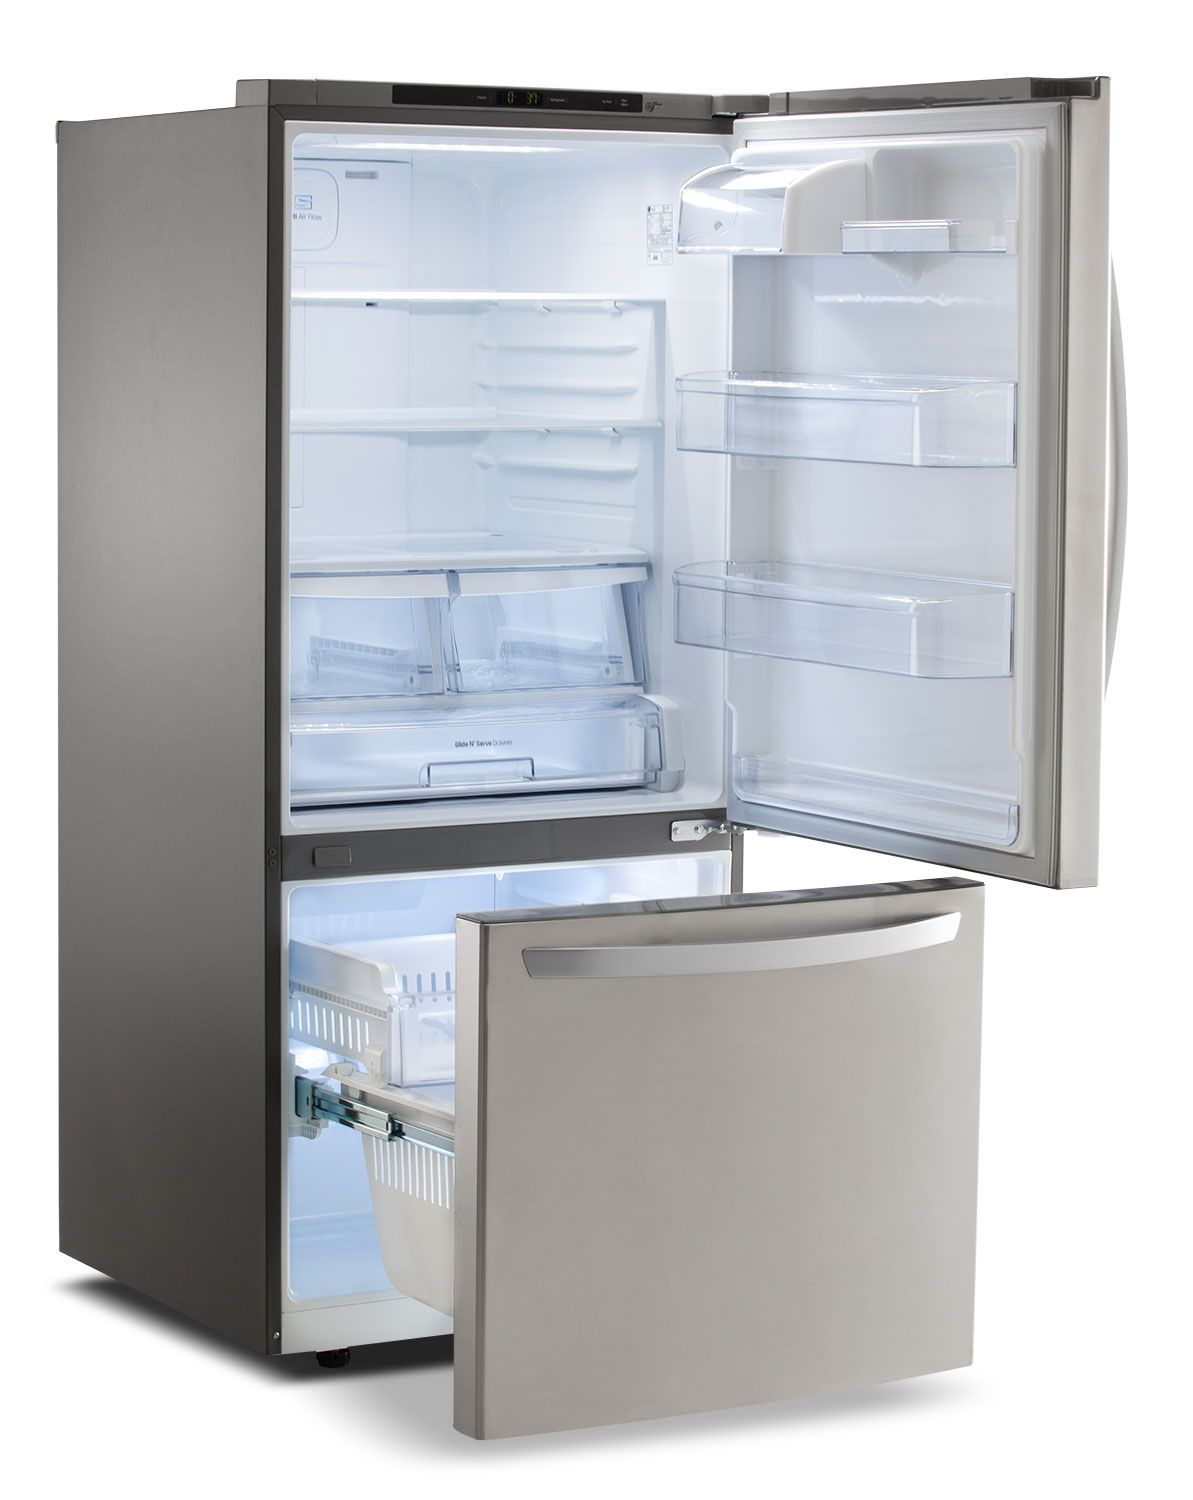 New Refrigerator Price Lg Appliances Stainless Steel Bottom Freezer Refrigerator 22 1 Cu